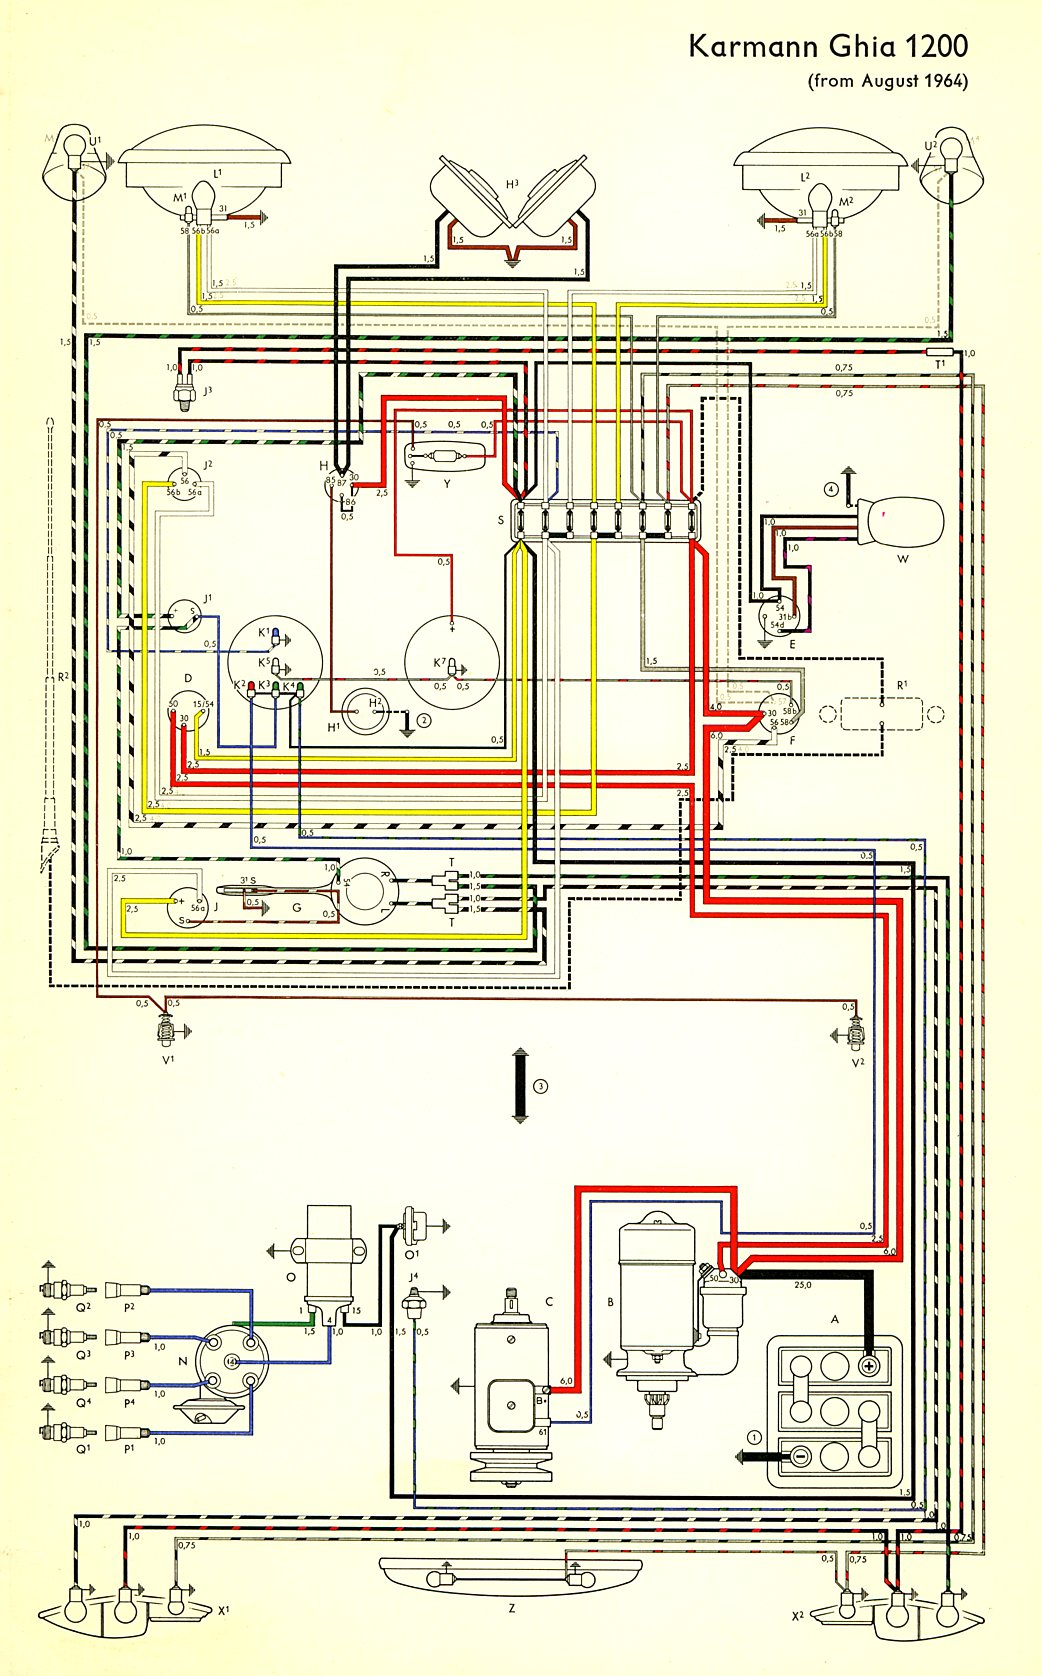 wiring diagram wiring diagram for impala the wiring diagram com karmann ghia wiring diagrams 1965